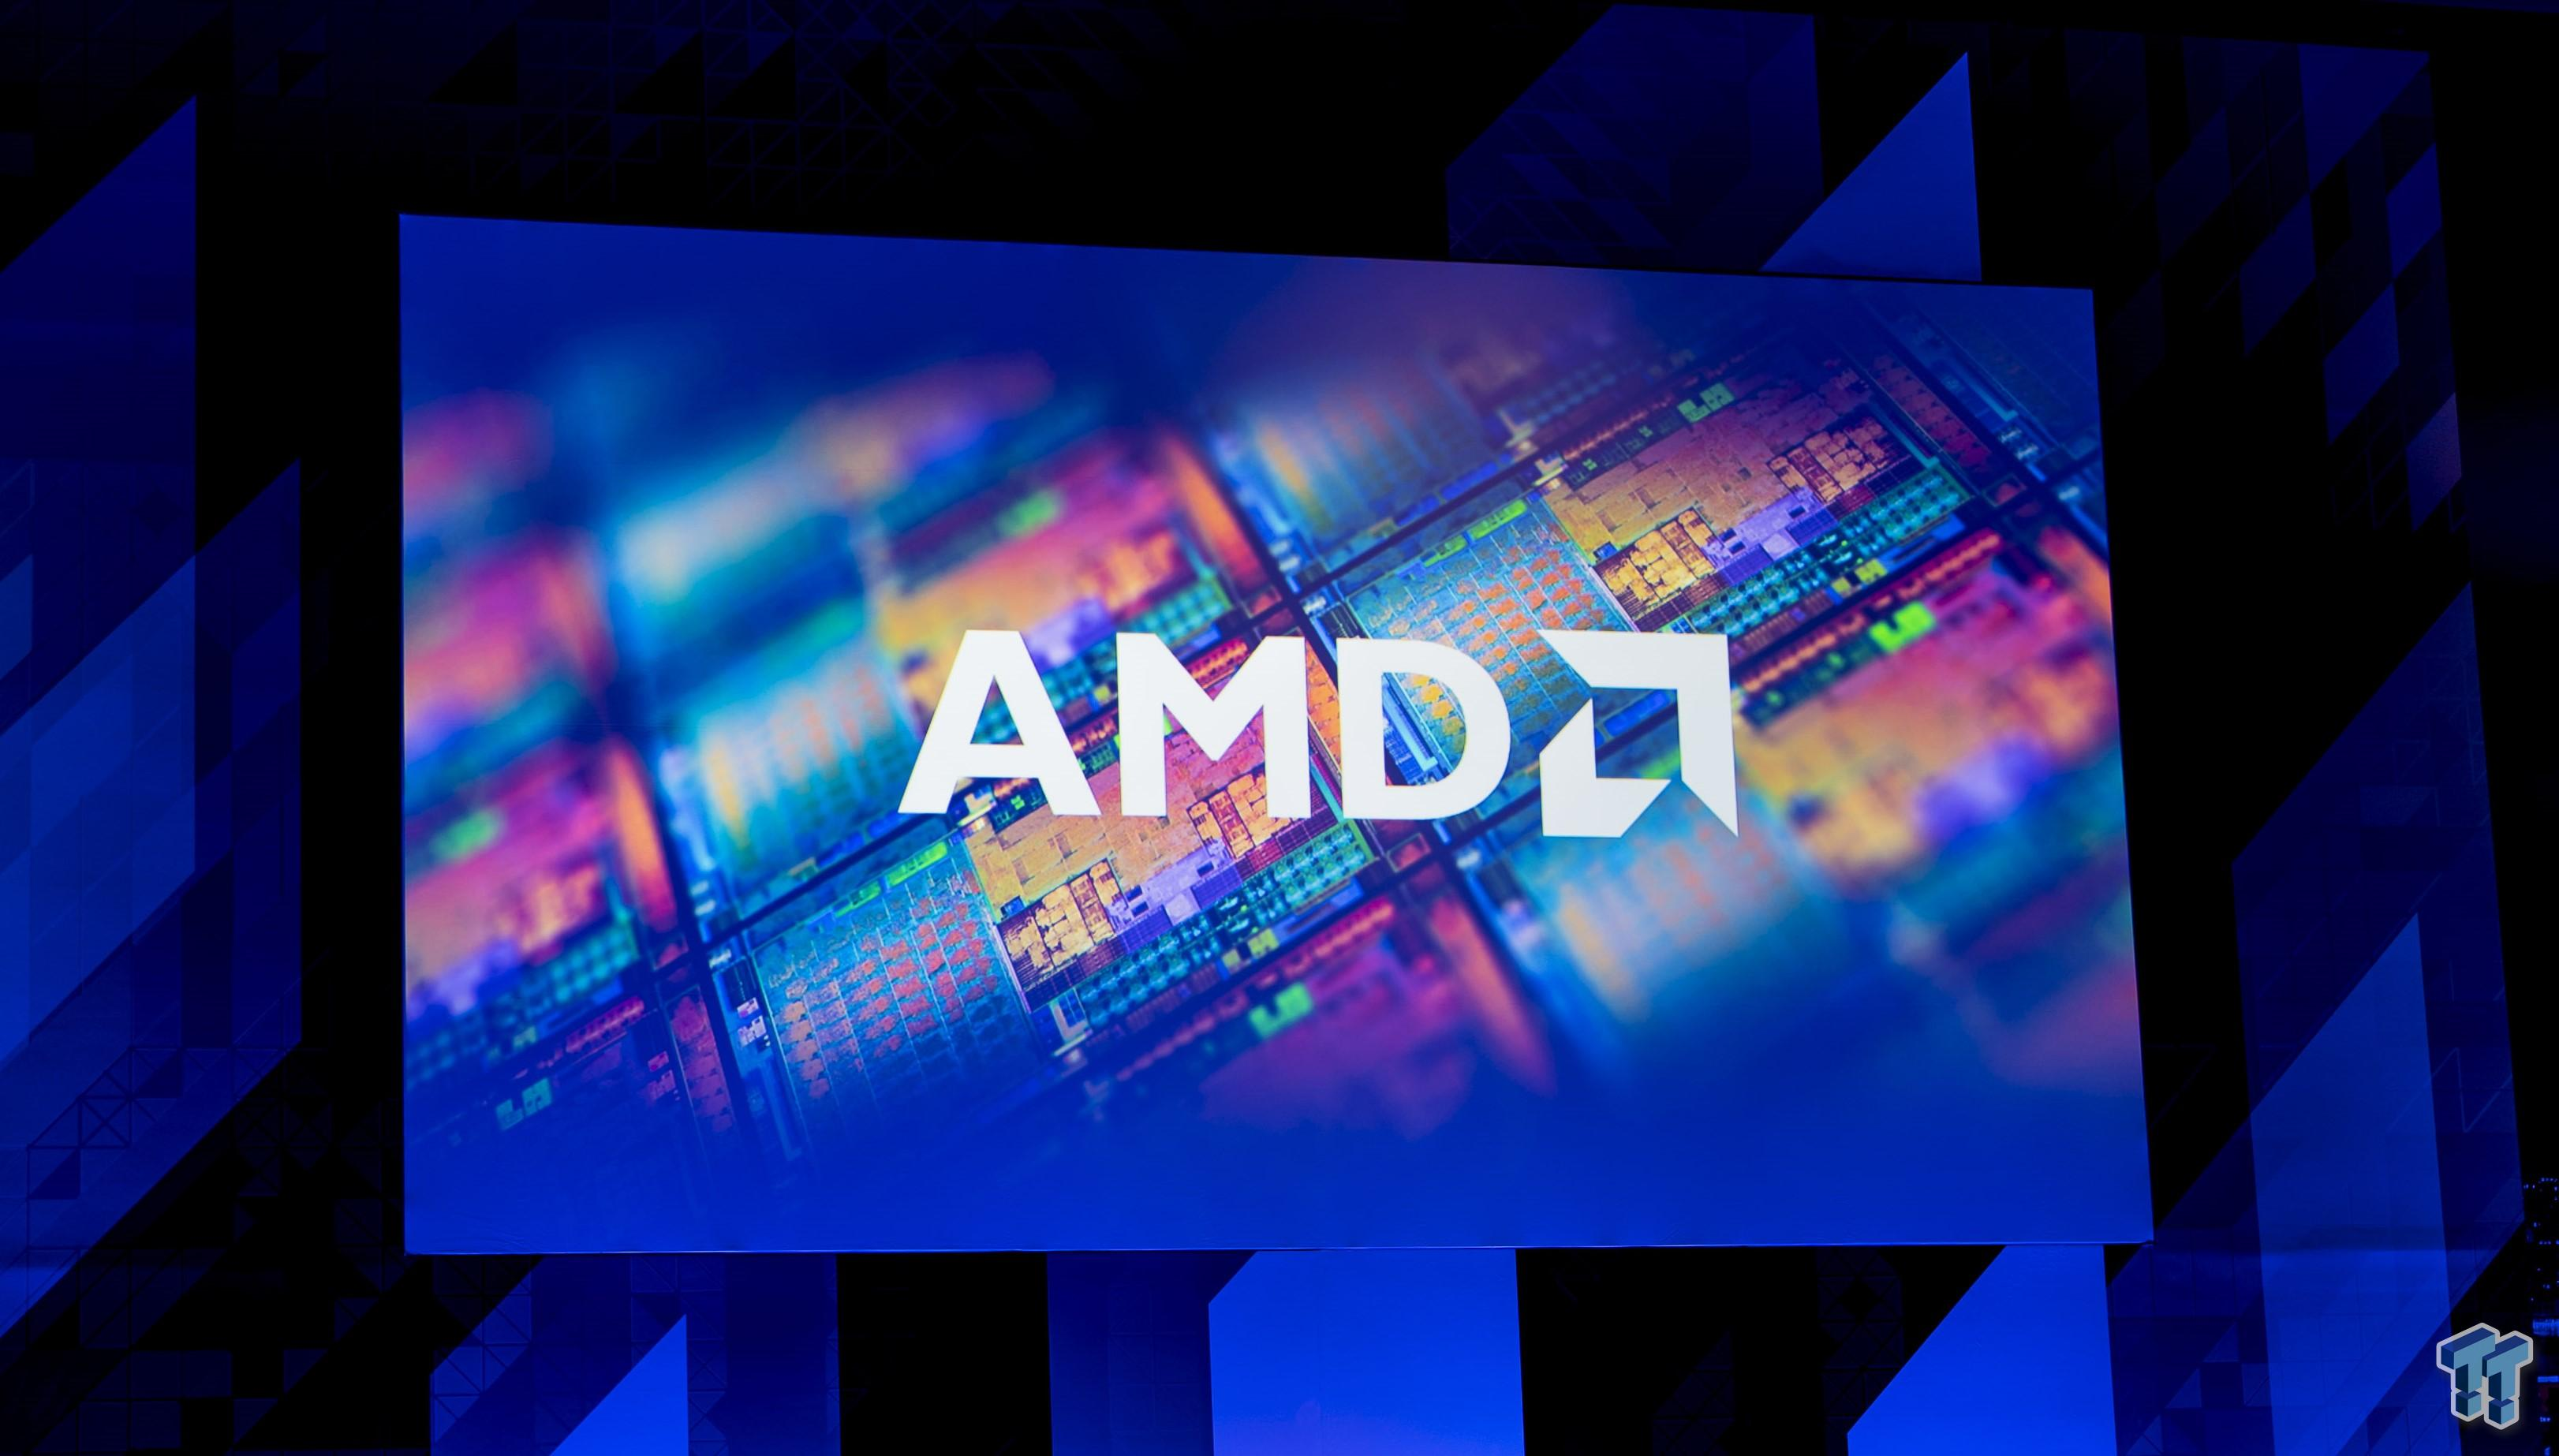 AMD hits LG, Vizio products with patent infringement